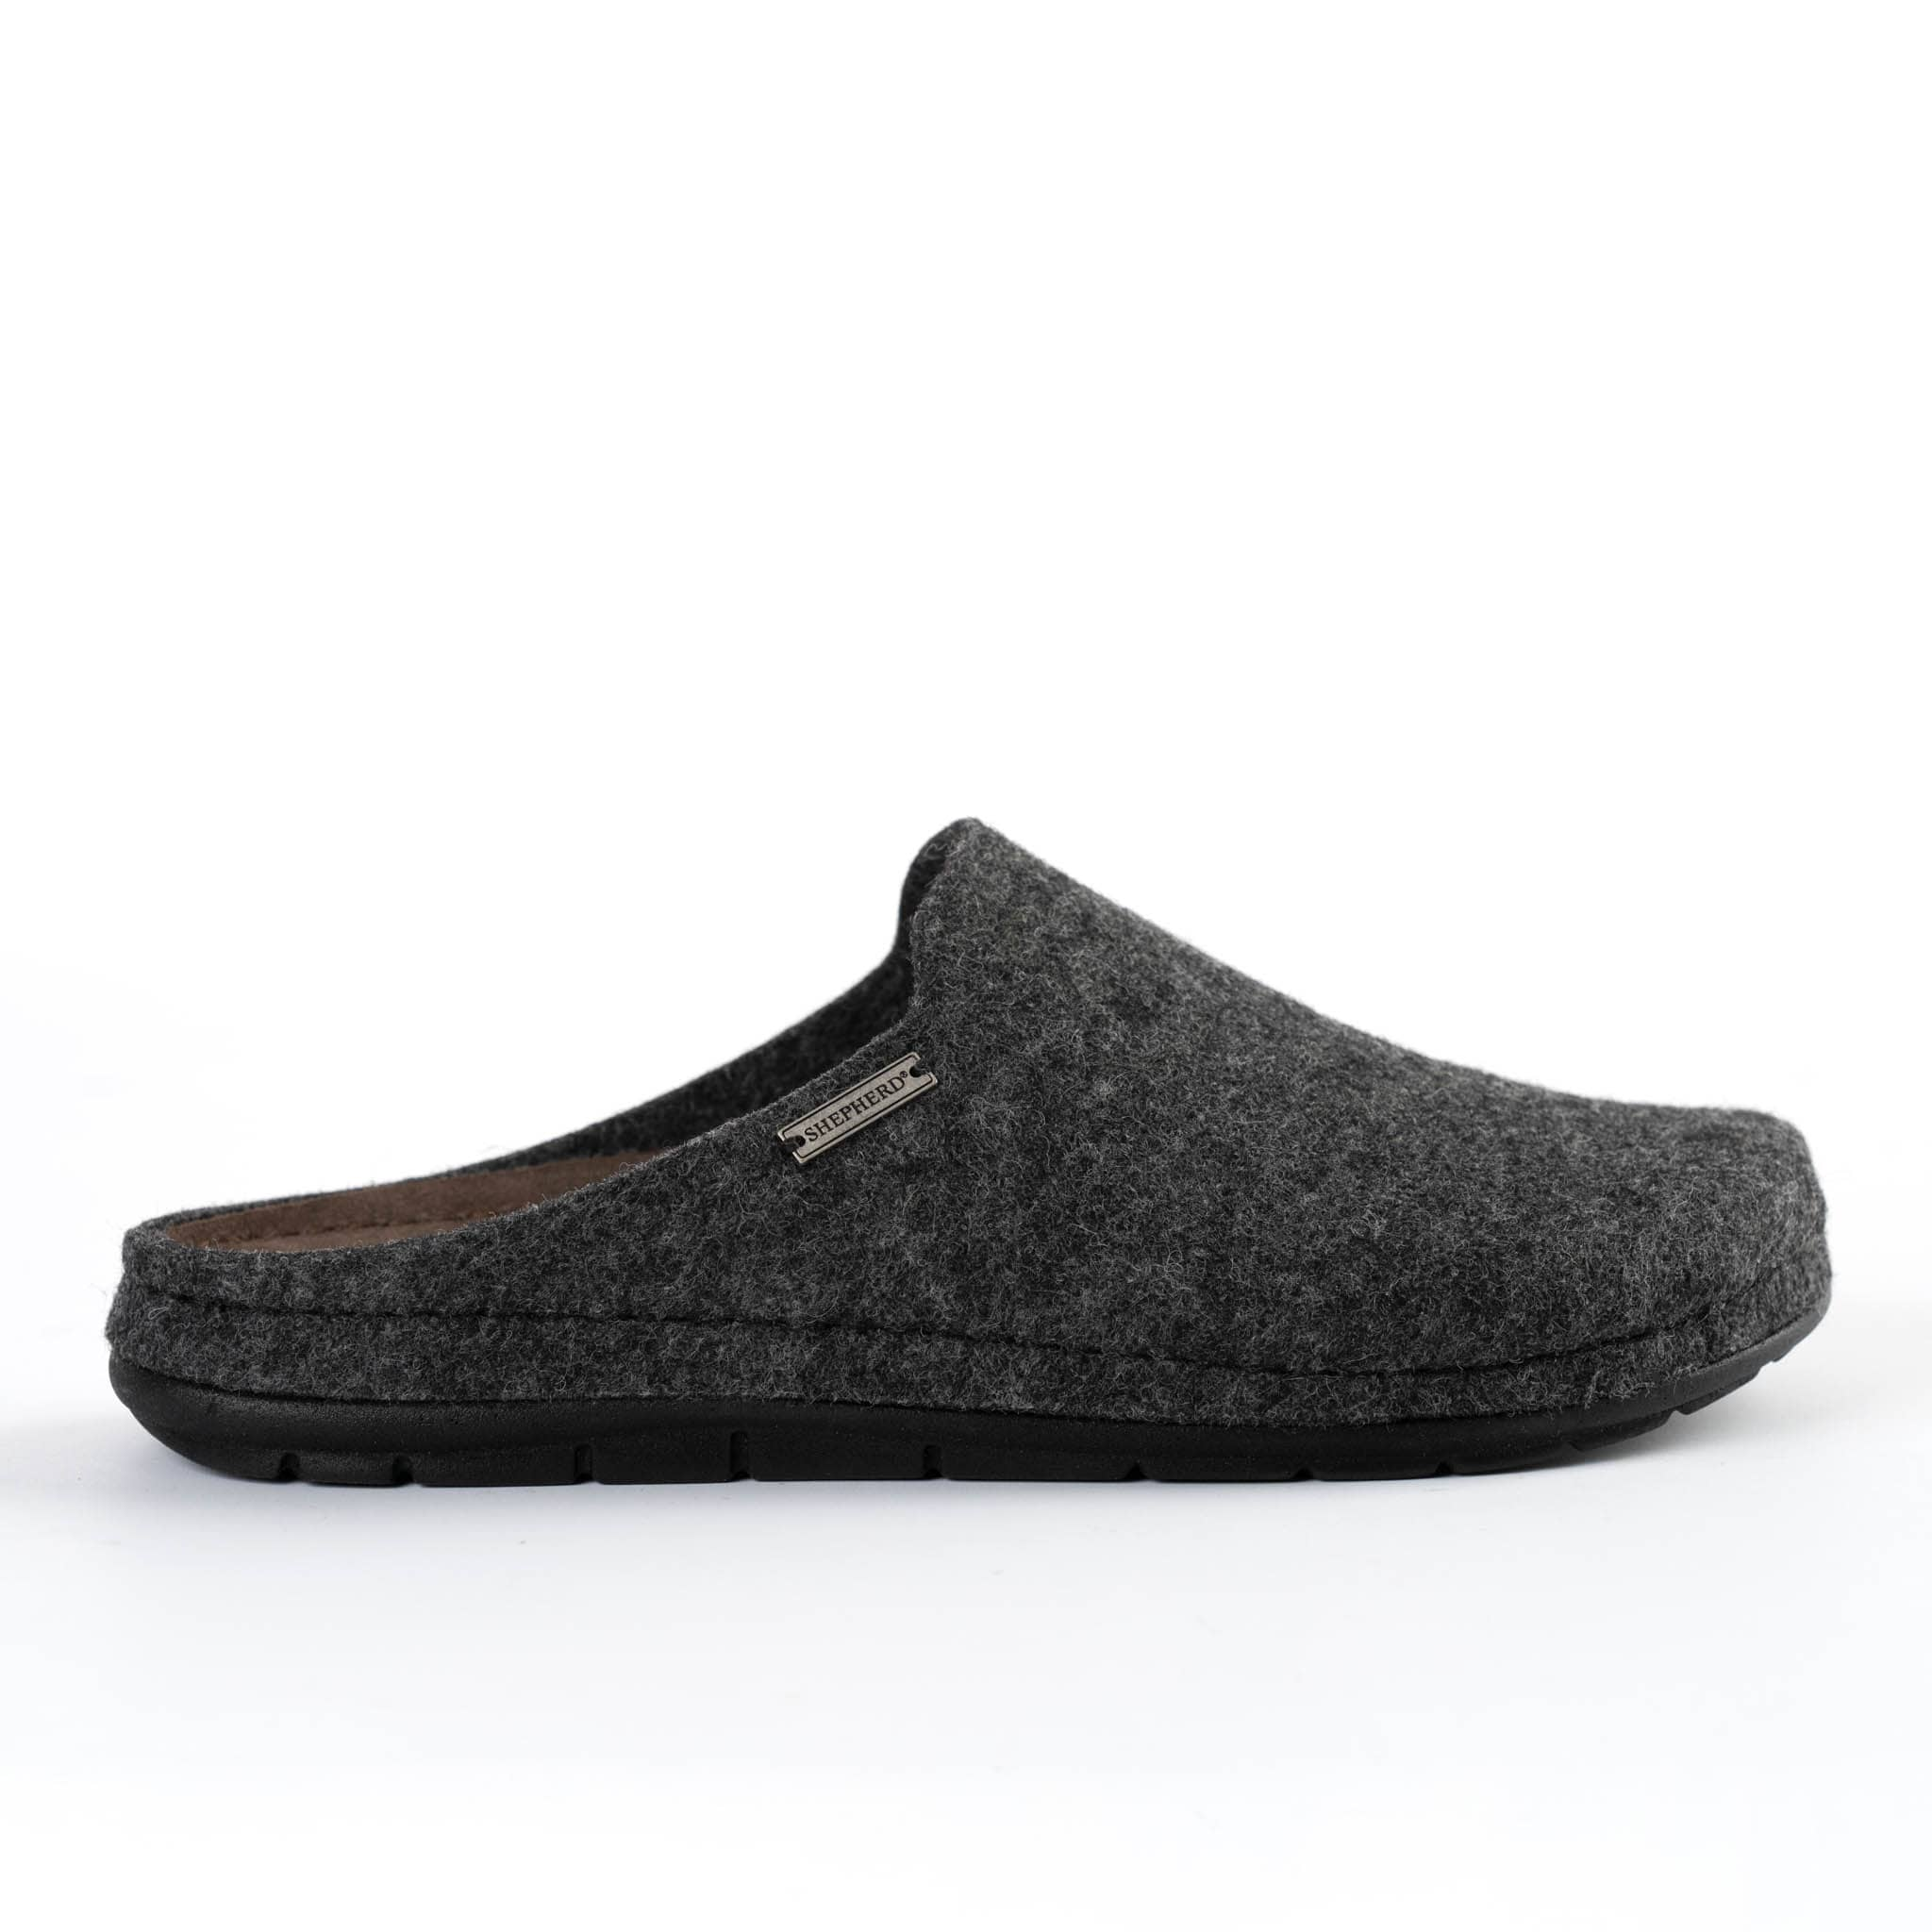 Samuel wool slippers